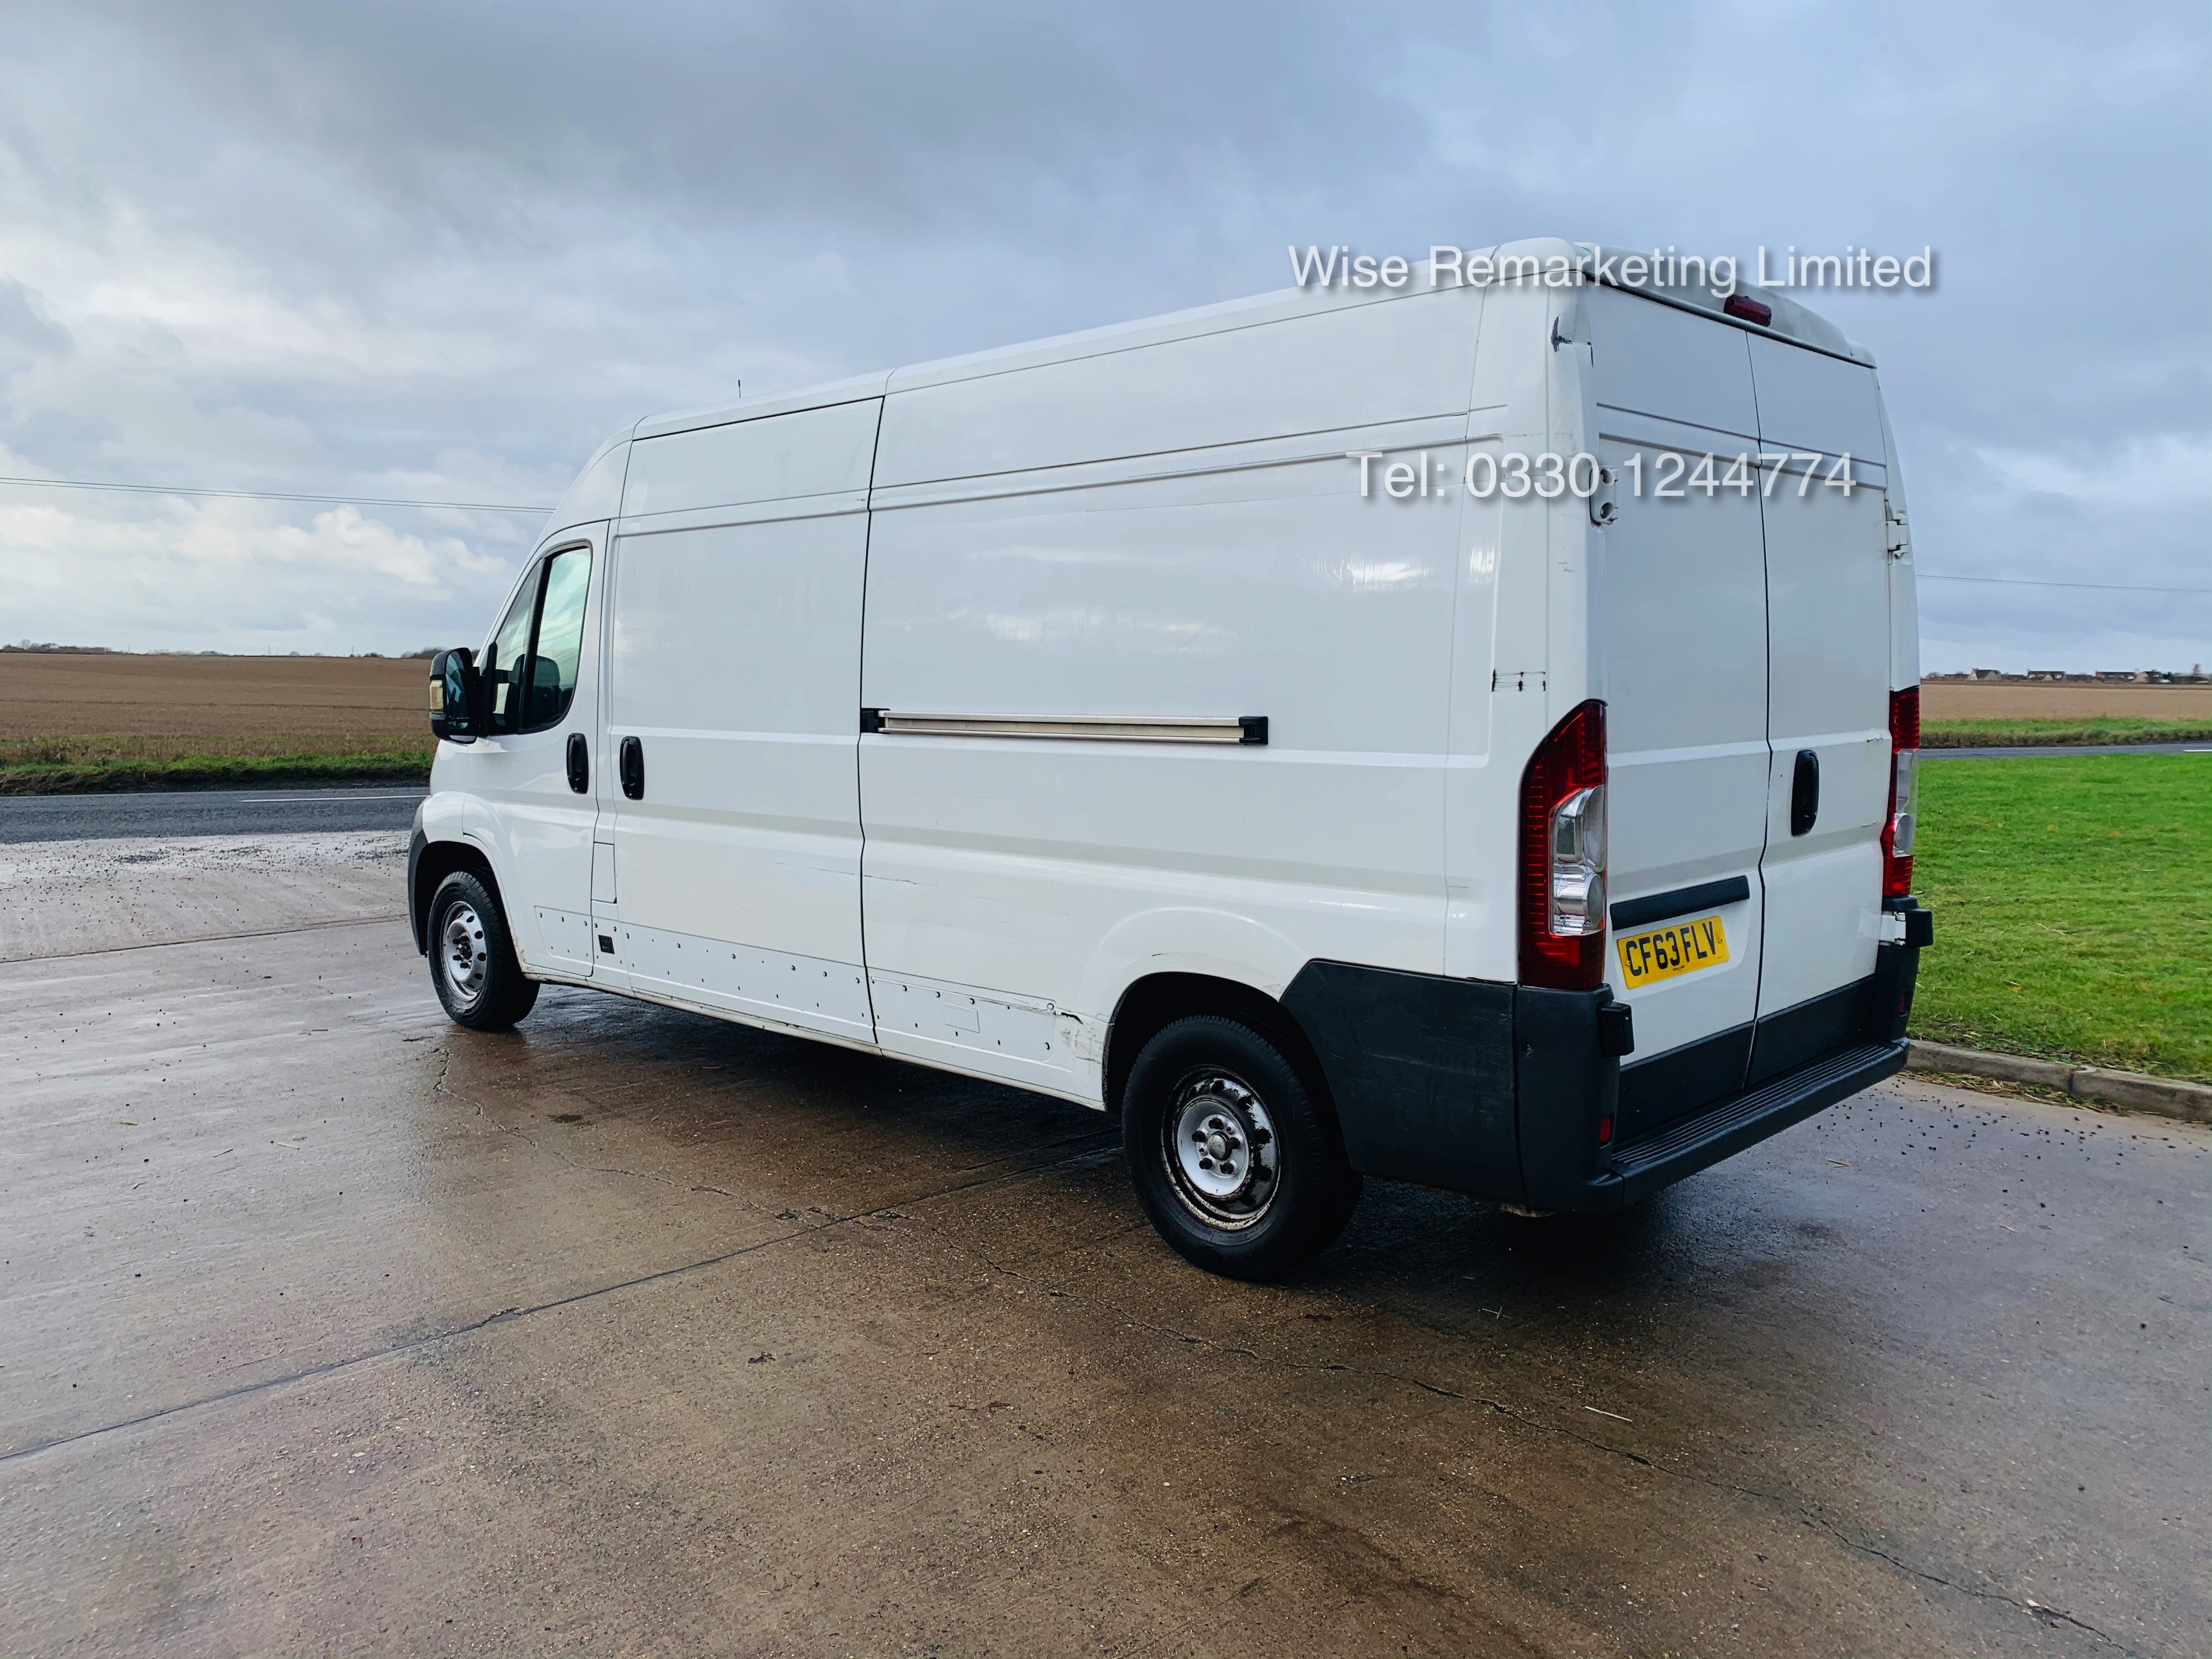 Peugeot Boxer 335 2.2 HDi Long Wheel Base( L3H2) 2014 Model - 1 Keeper From New - Image 5 of 17